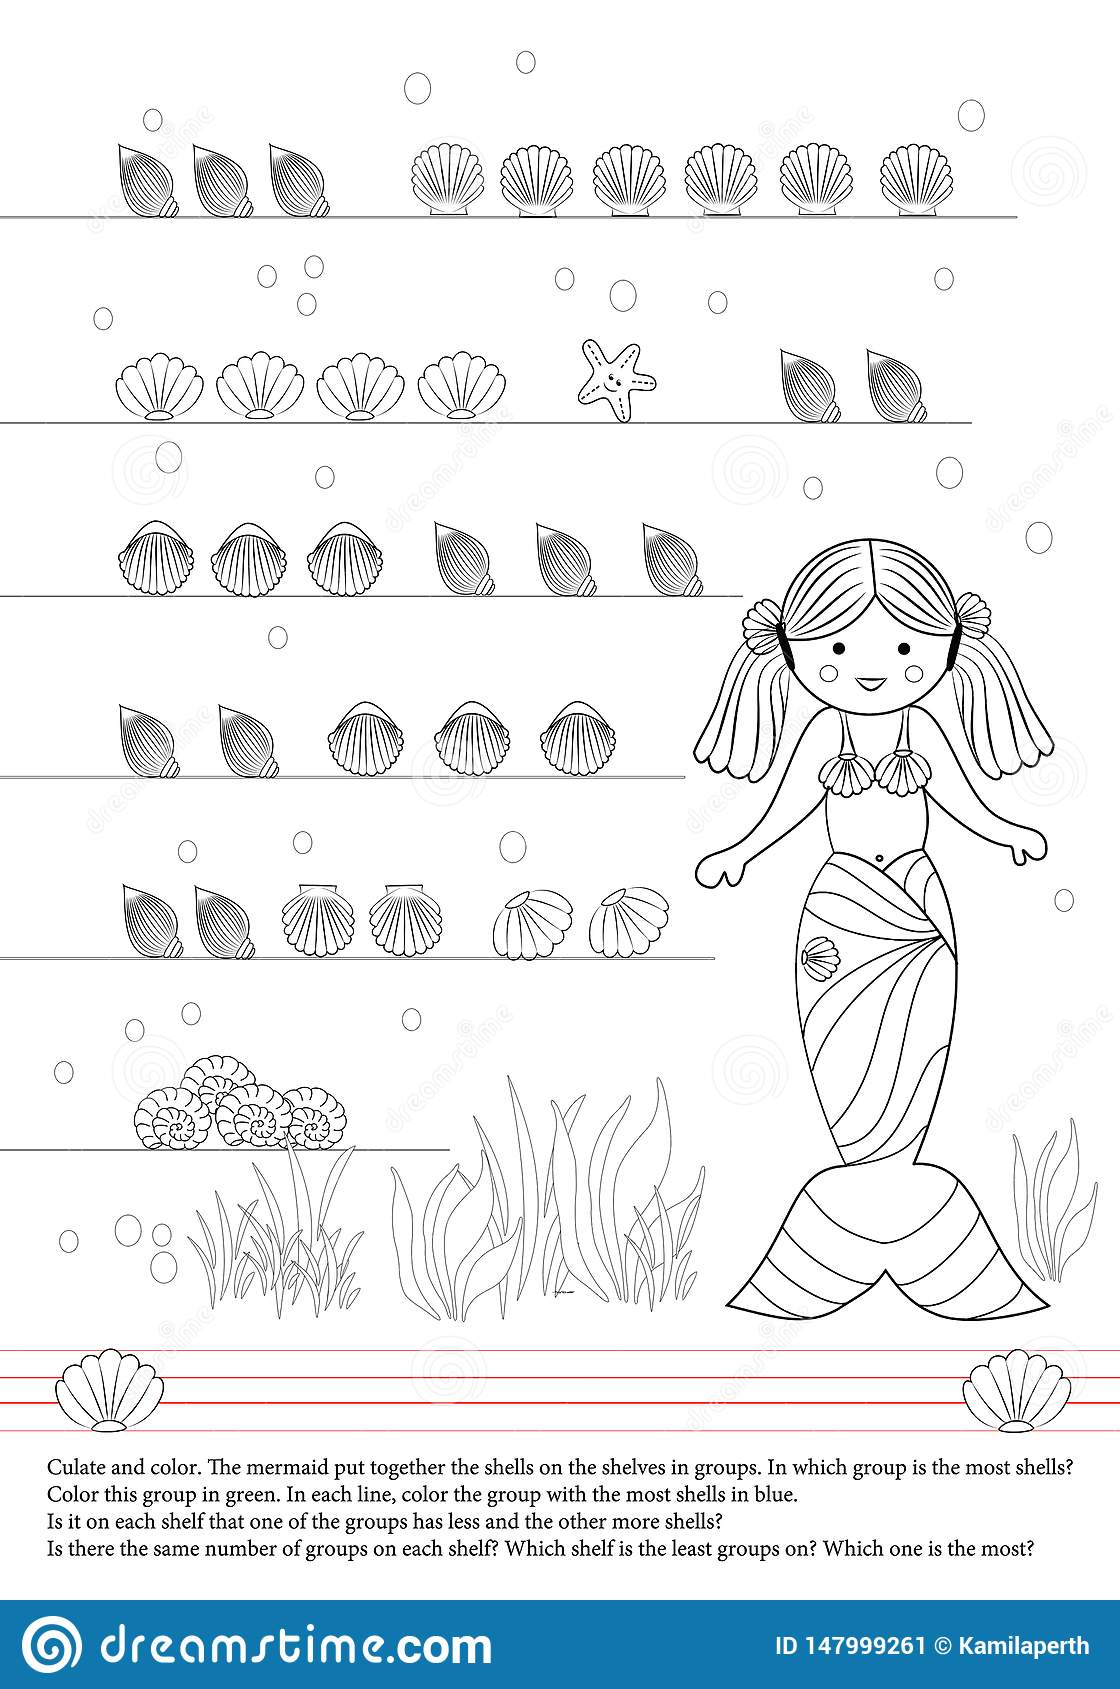 Activities book for children. Mermaid. Shells. Group. Draw.